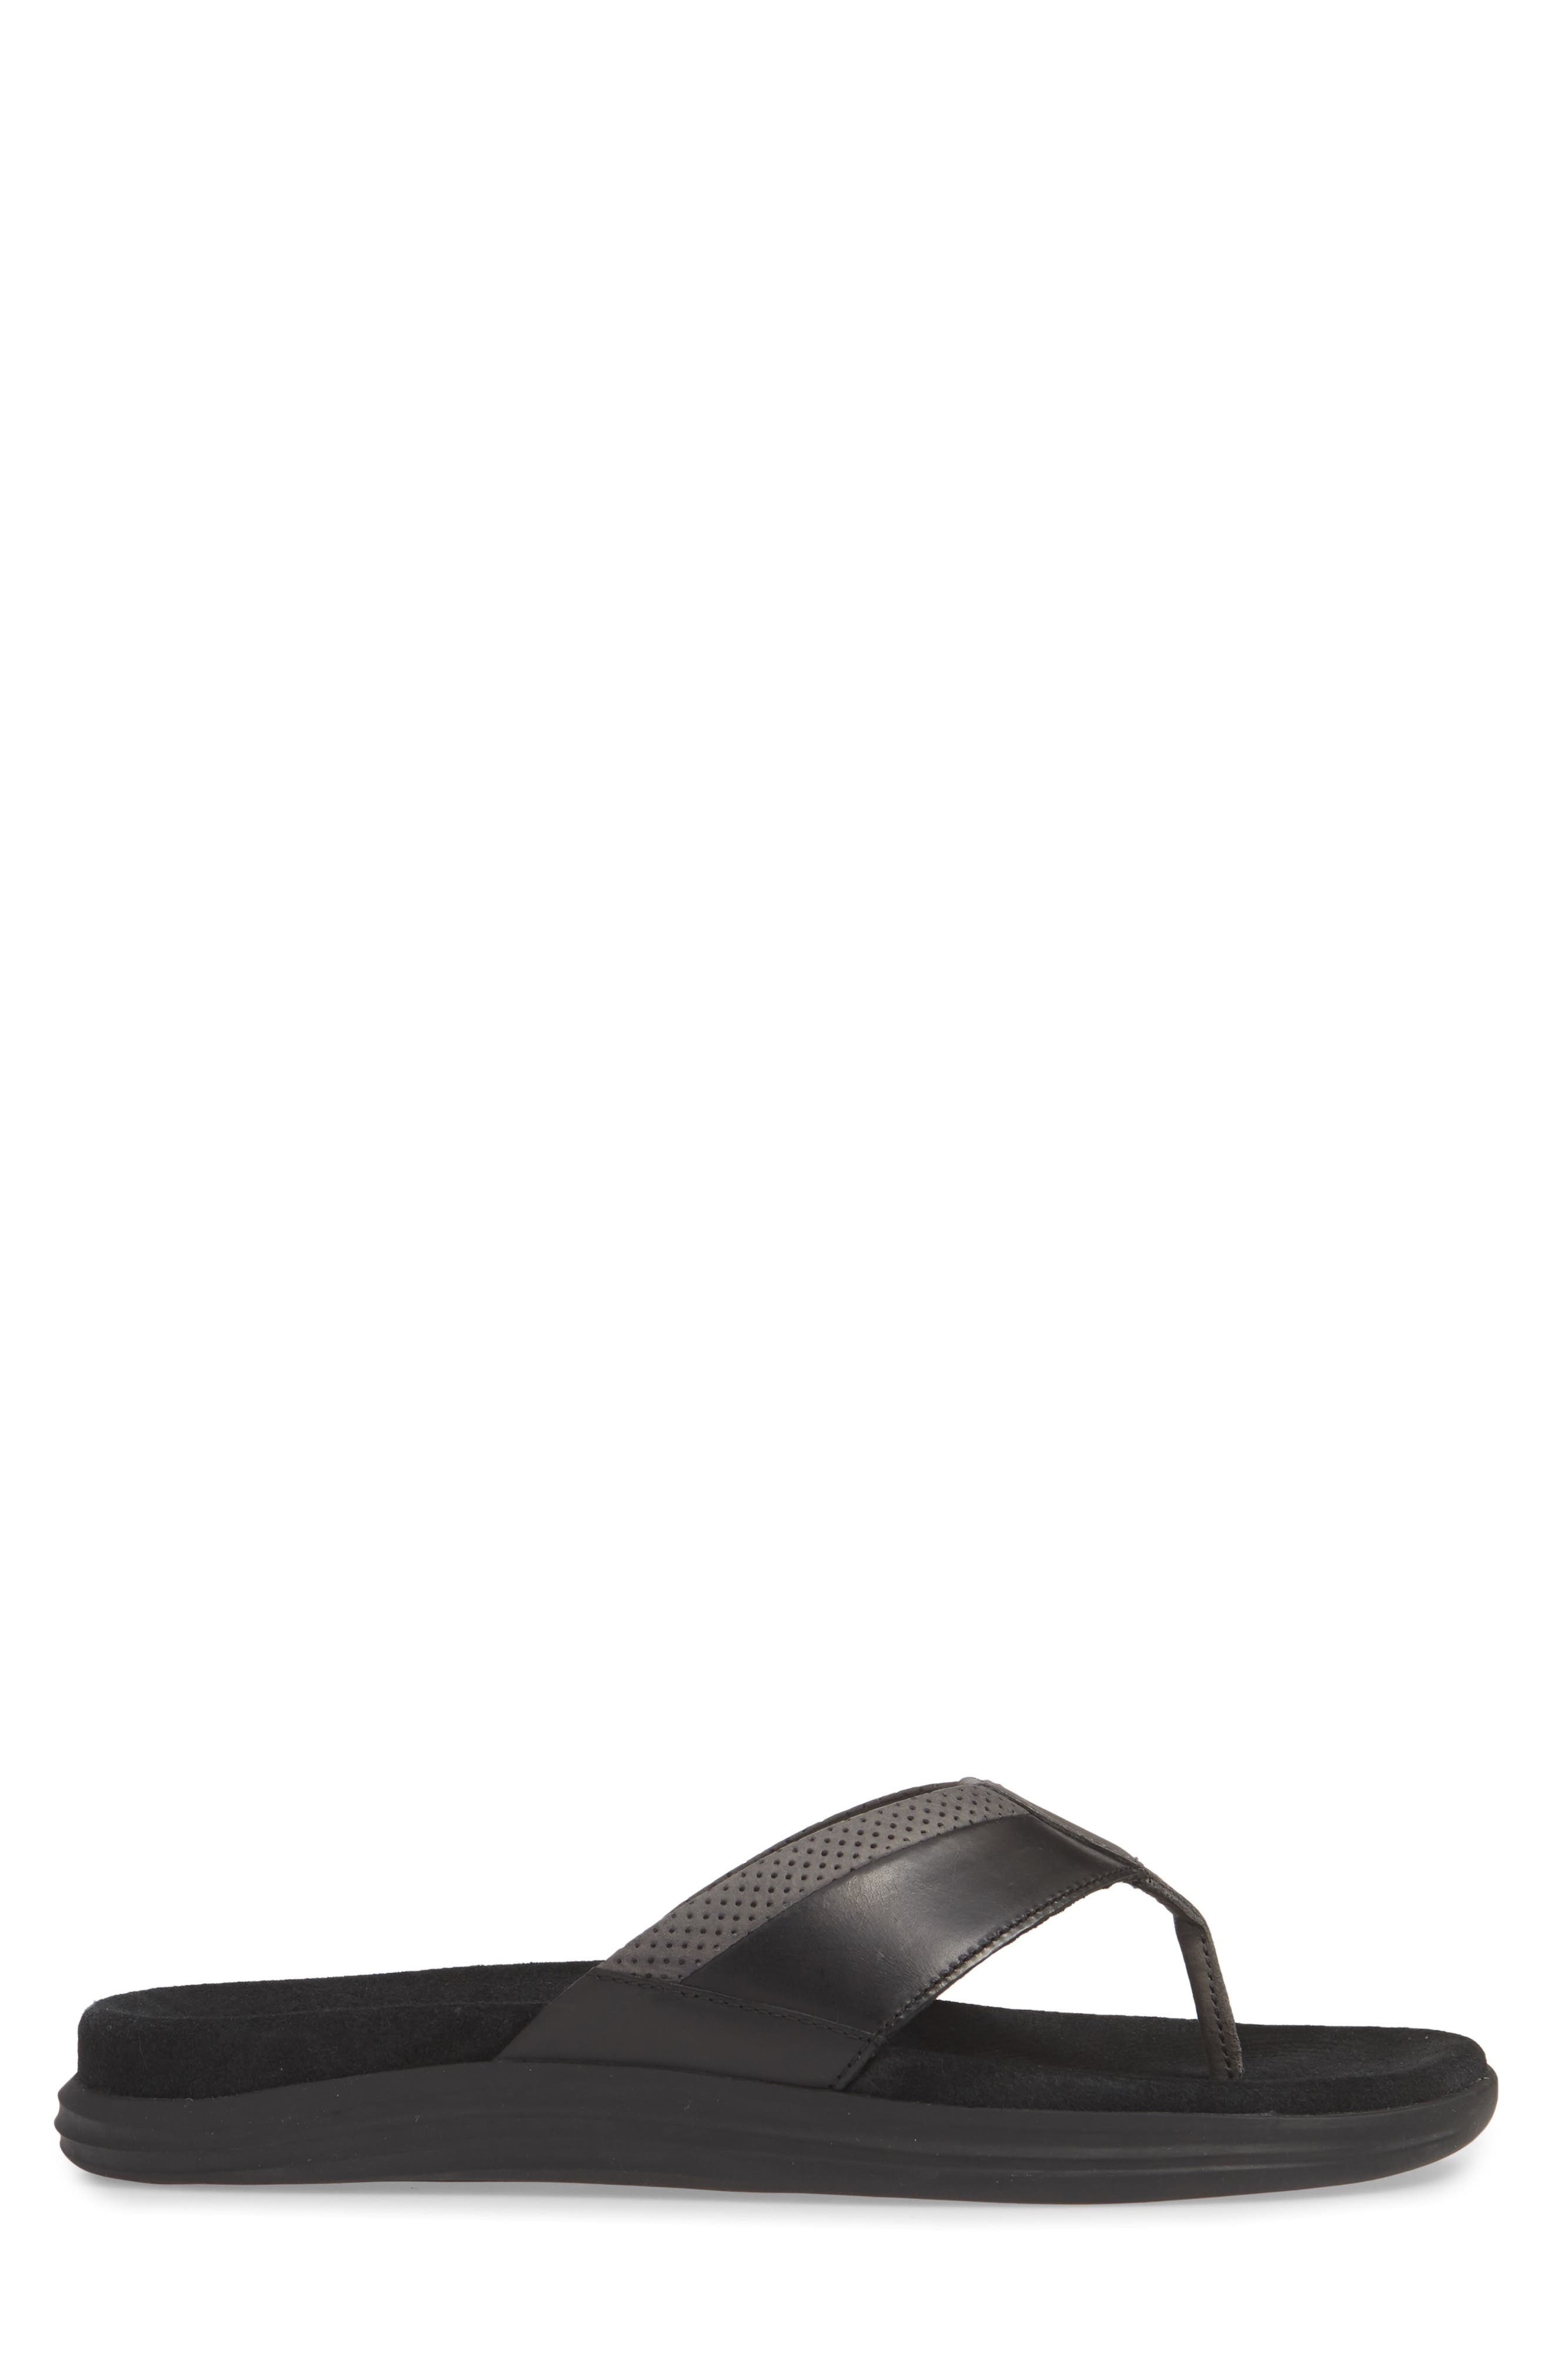 SPERRY, Gold Cup Amalfi Flip Flop, Alternate thumbnail 3, color, BLACK/ GREY LEATHER